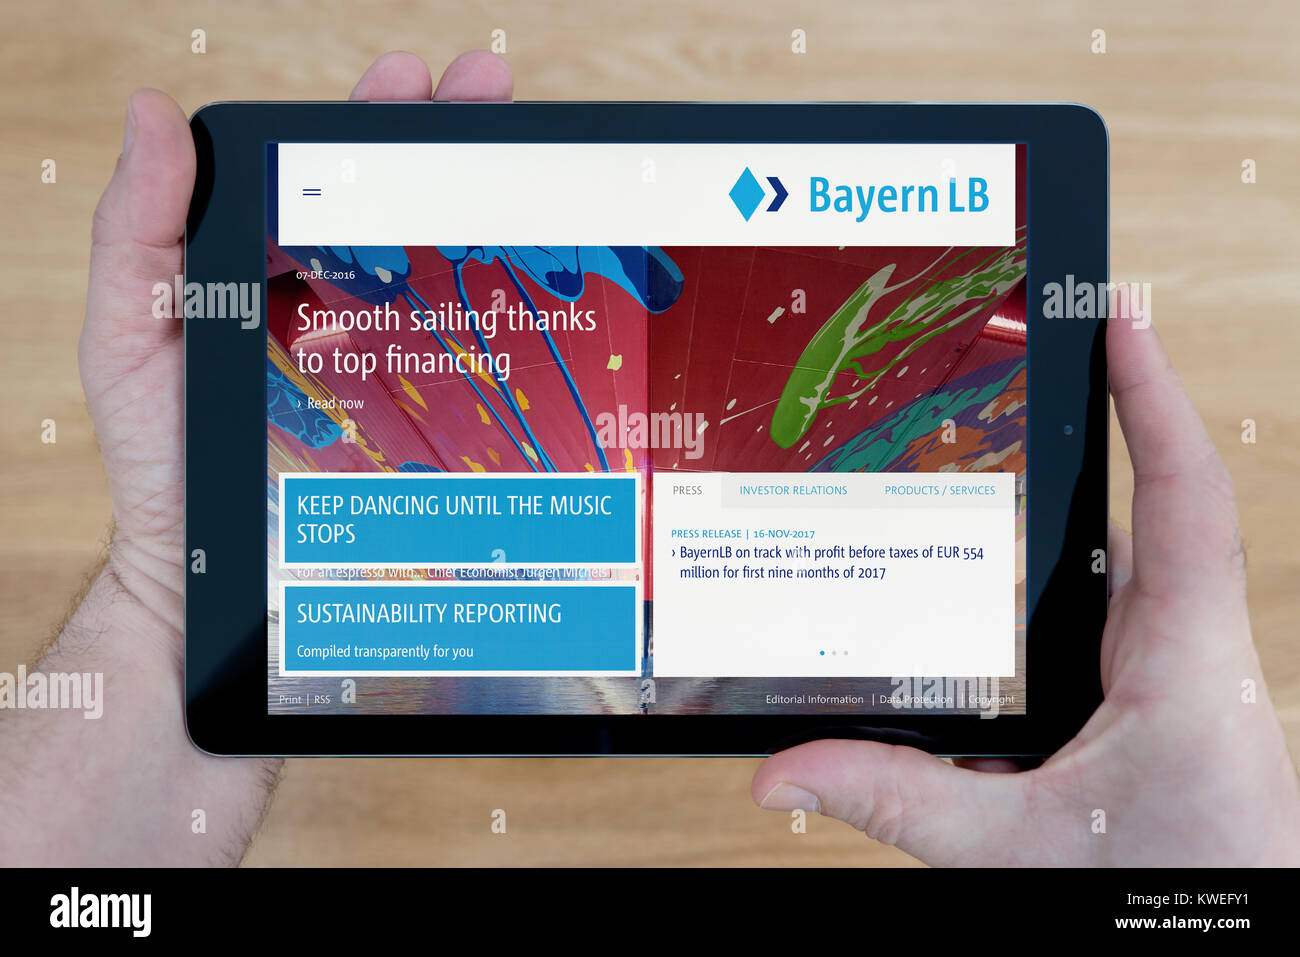 A man looks at the BayernLB (Bayerische Landesbank) bank website on his iPad tablet device, over wooden table top - Stock Image